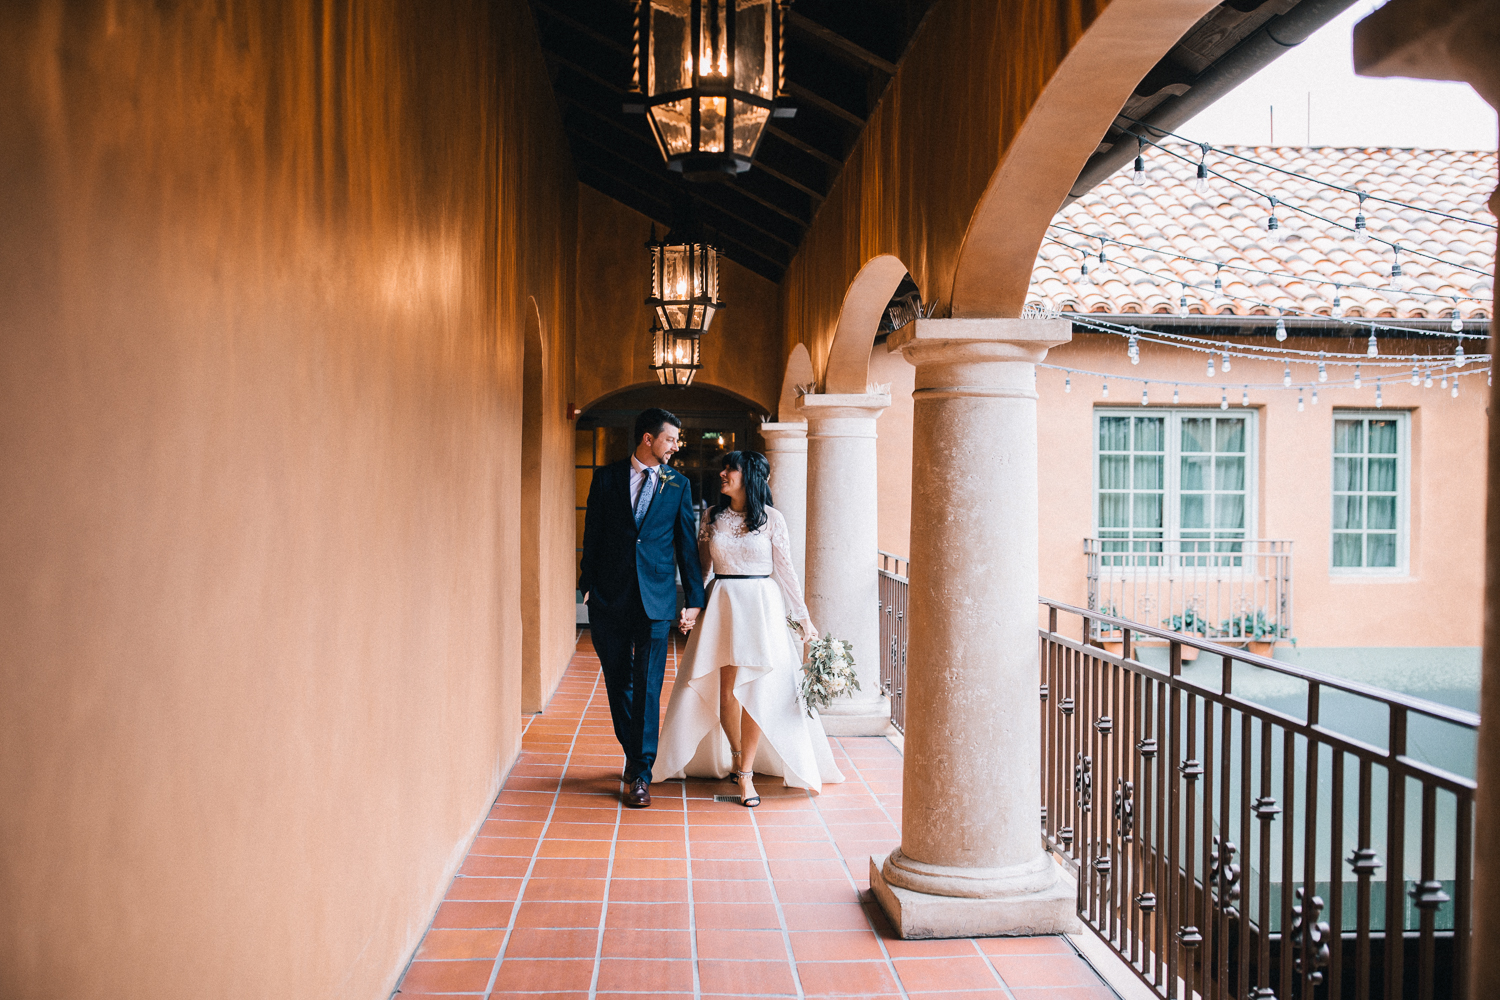 2019_05_ 182019.05.19 Lisa + Eddie South Bay Wedding Blog Photos Edited For Web 0075.jpg